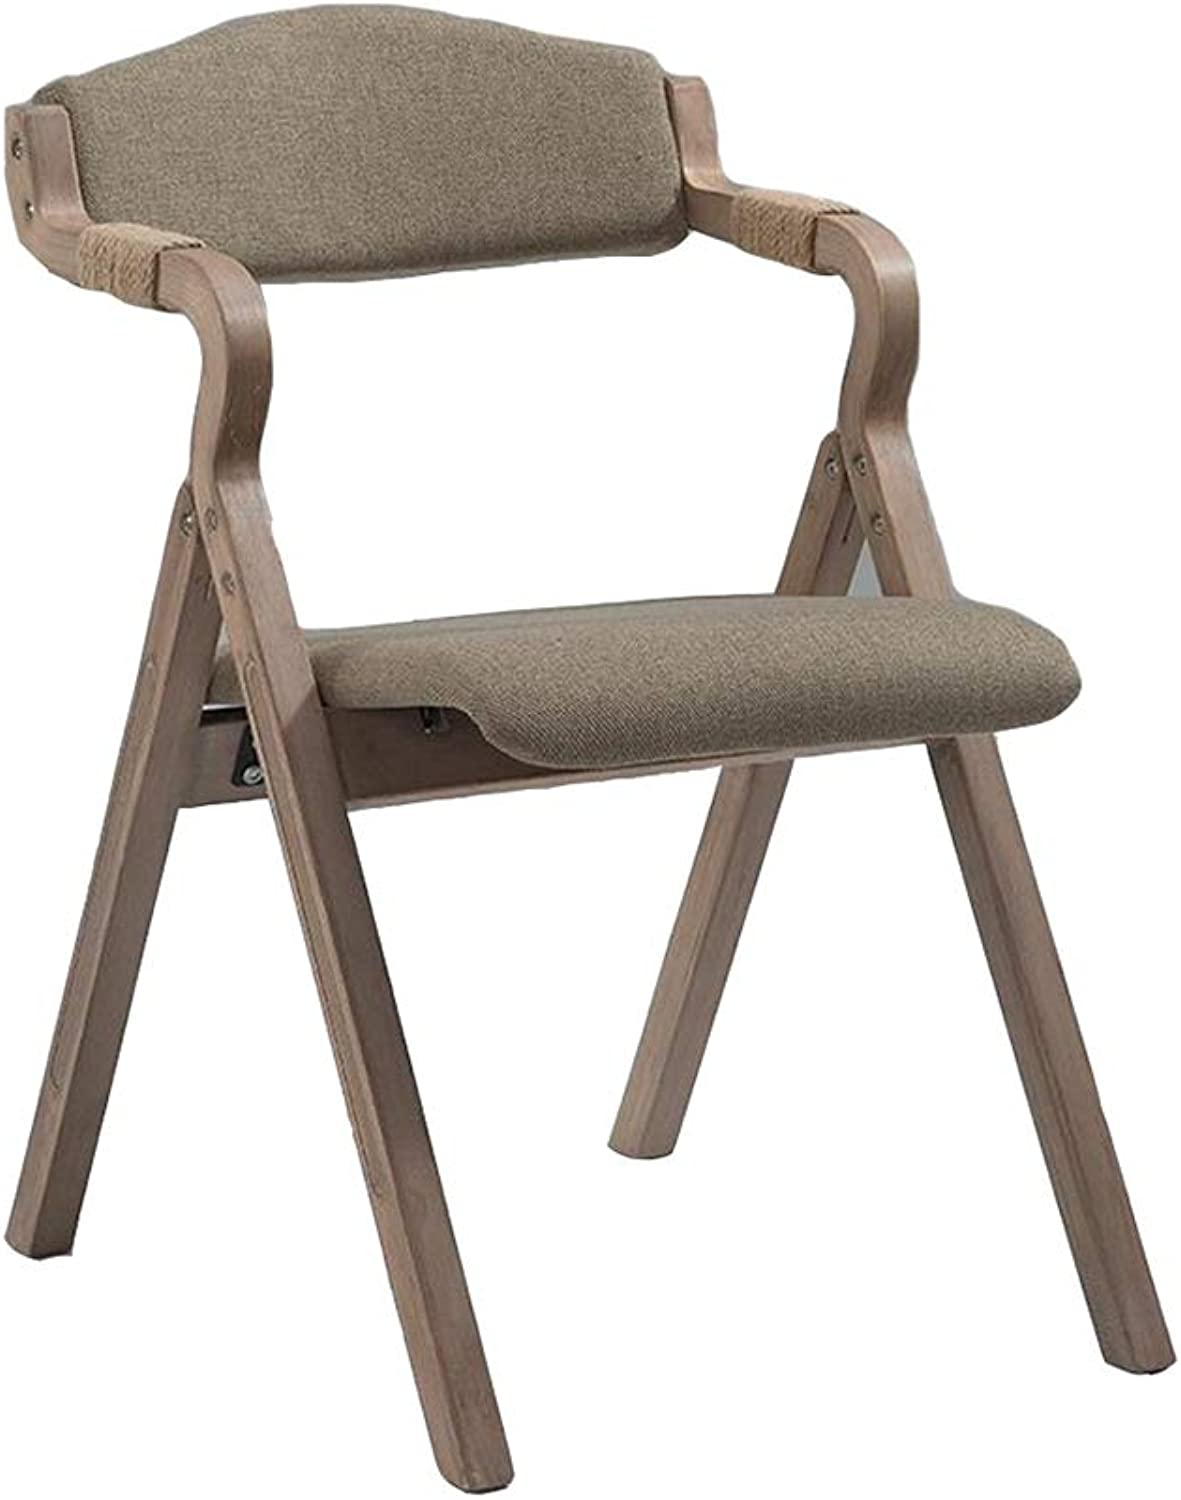 Dall Solid Wood Dining Chair Simple Cloth Folding Adult Armchair Computer Household (color   T1)